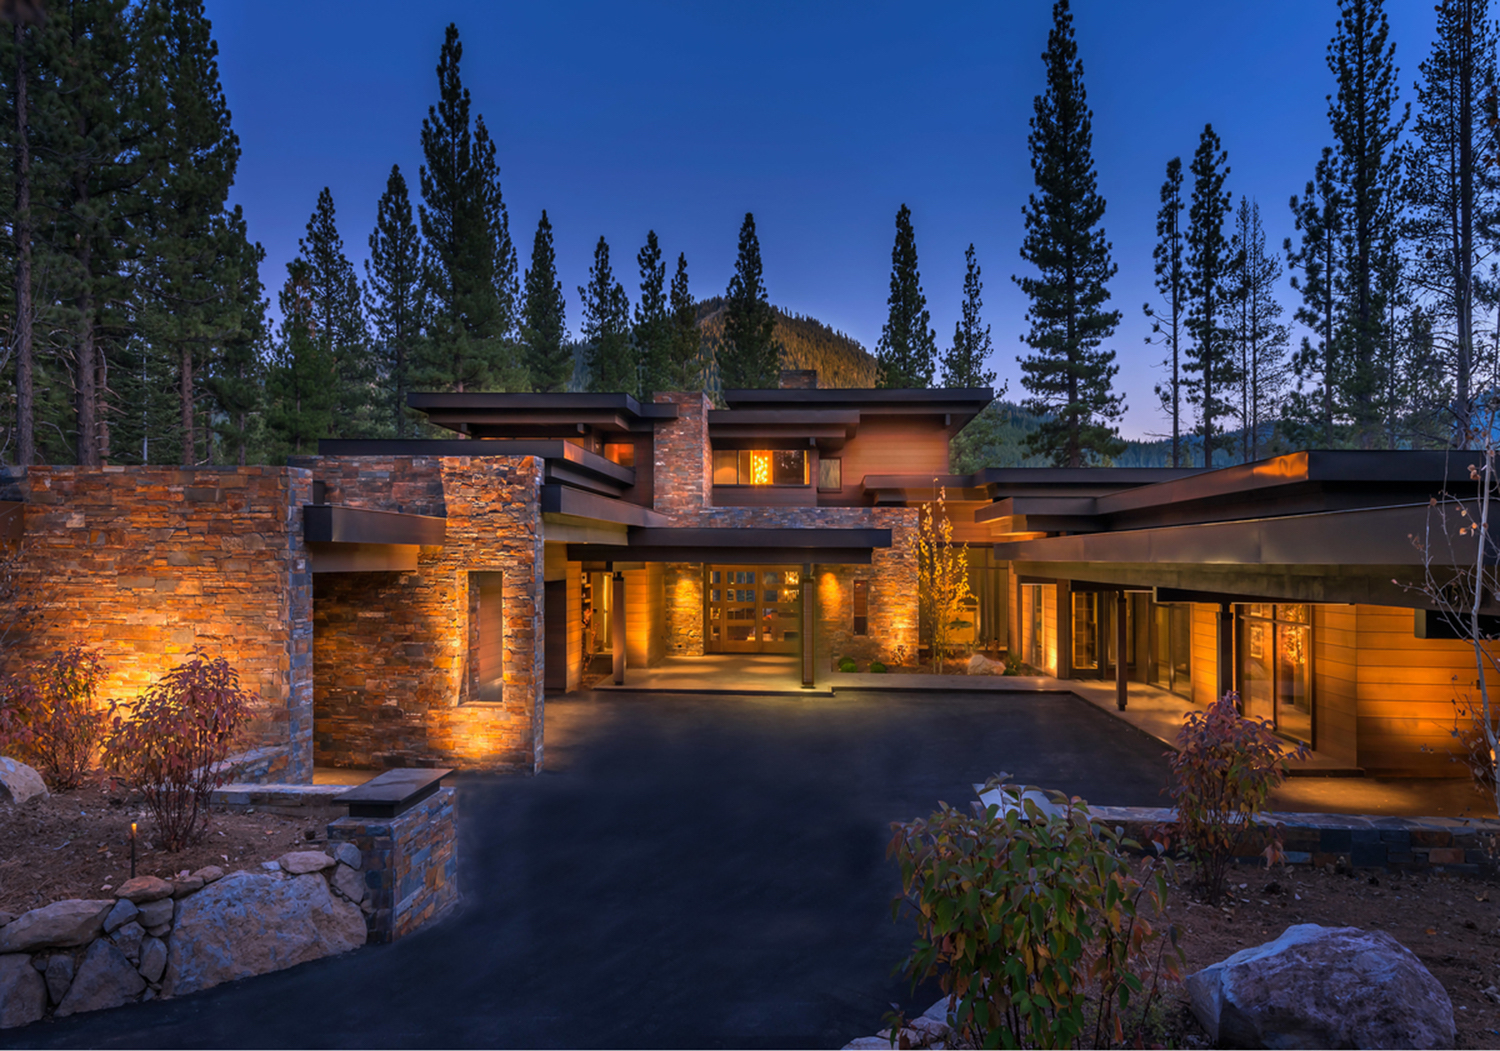 Lot 372 - 7768 sq. ft. | 5bedrooms | 5.5 bathroomsgroundbreaking: July 2012| occupied: October 2013Ryan Group Architects